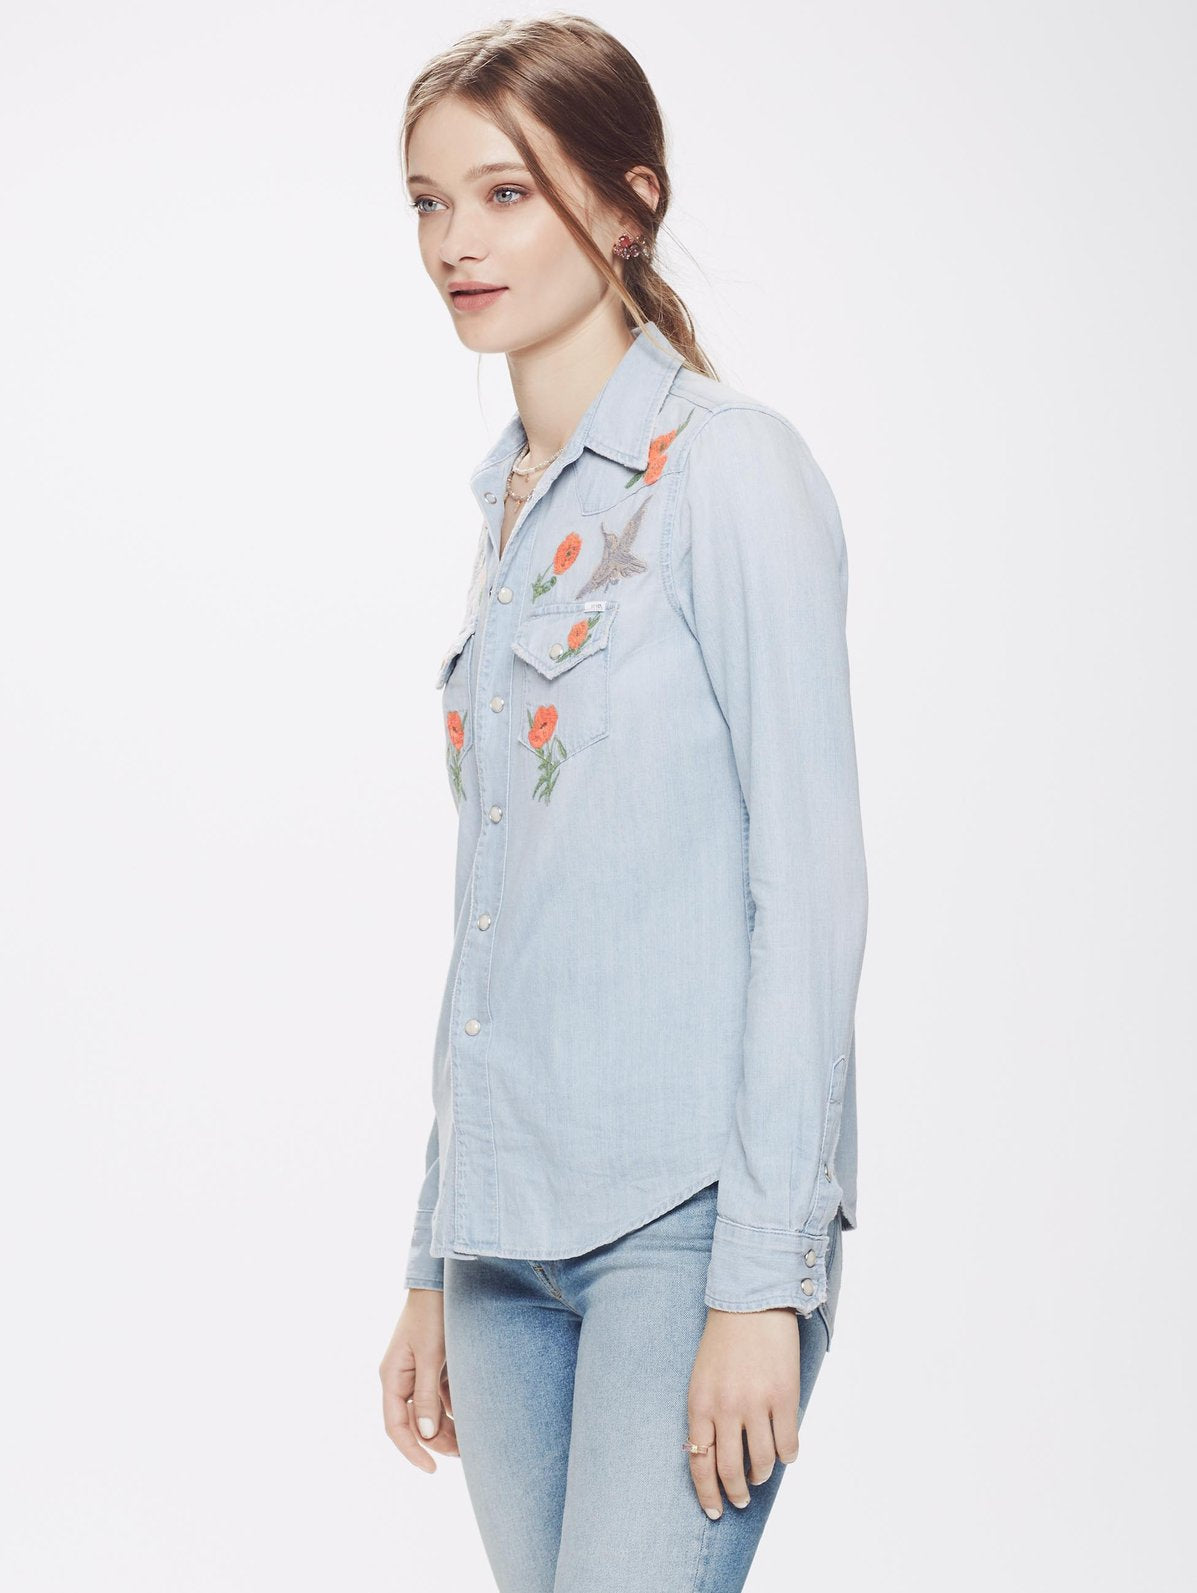 fbd1bd6ad40 All My Ex s Shirt - Love In An English Garden by Mother Denim ...